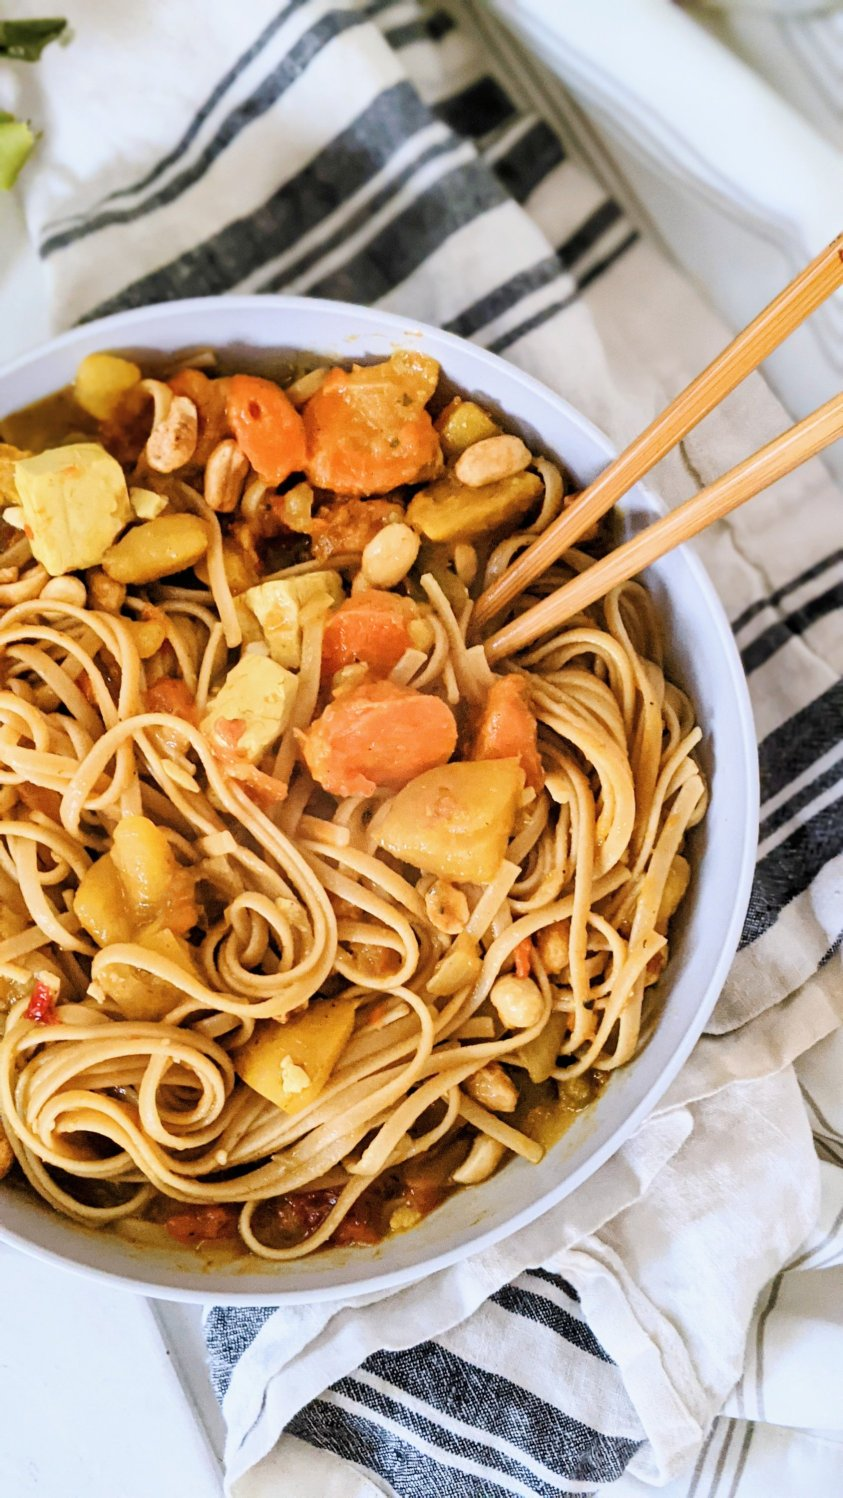 peanut curry pasta recipe peanut butter curry noodles with vegetable curry with peanut sauce vegan gluten free meatless thai noodle bowl recipe veggies